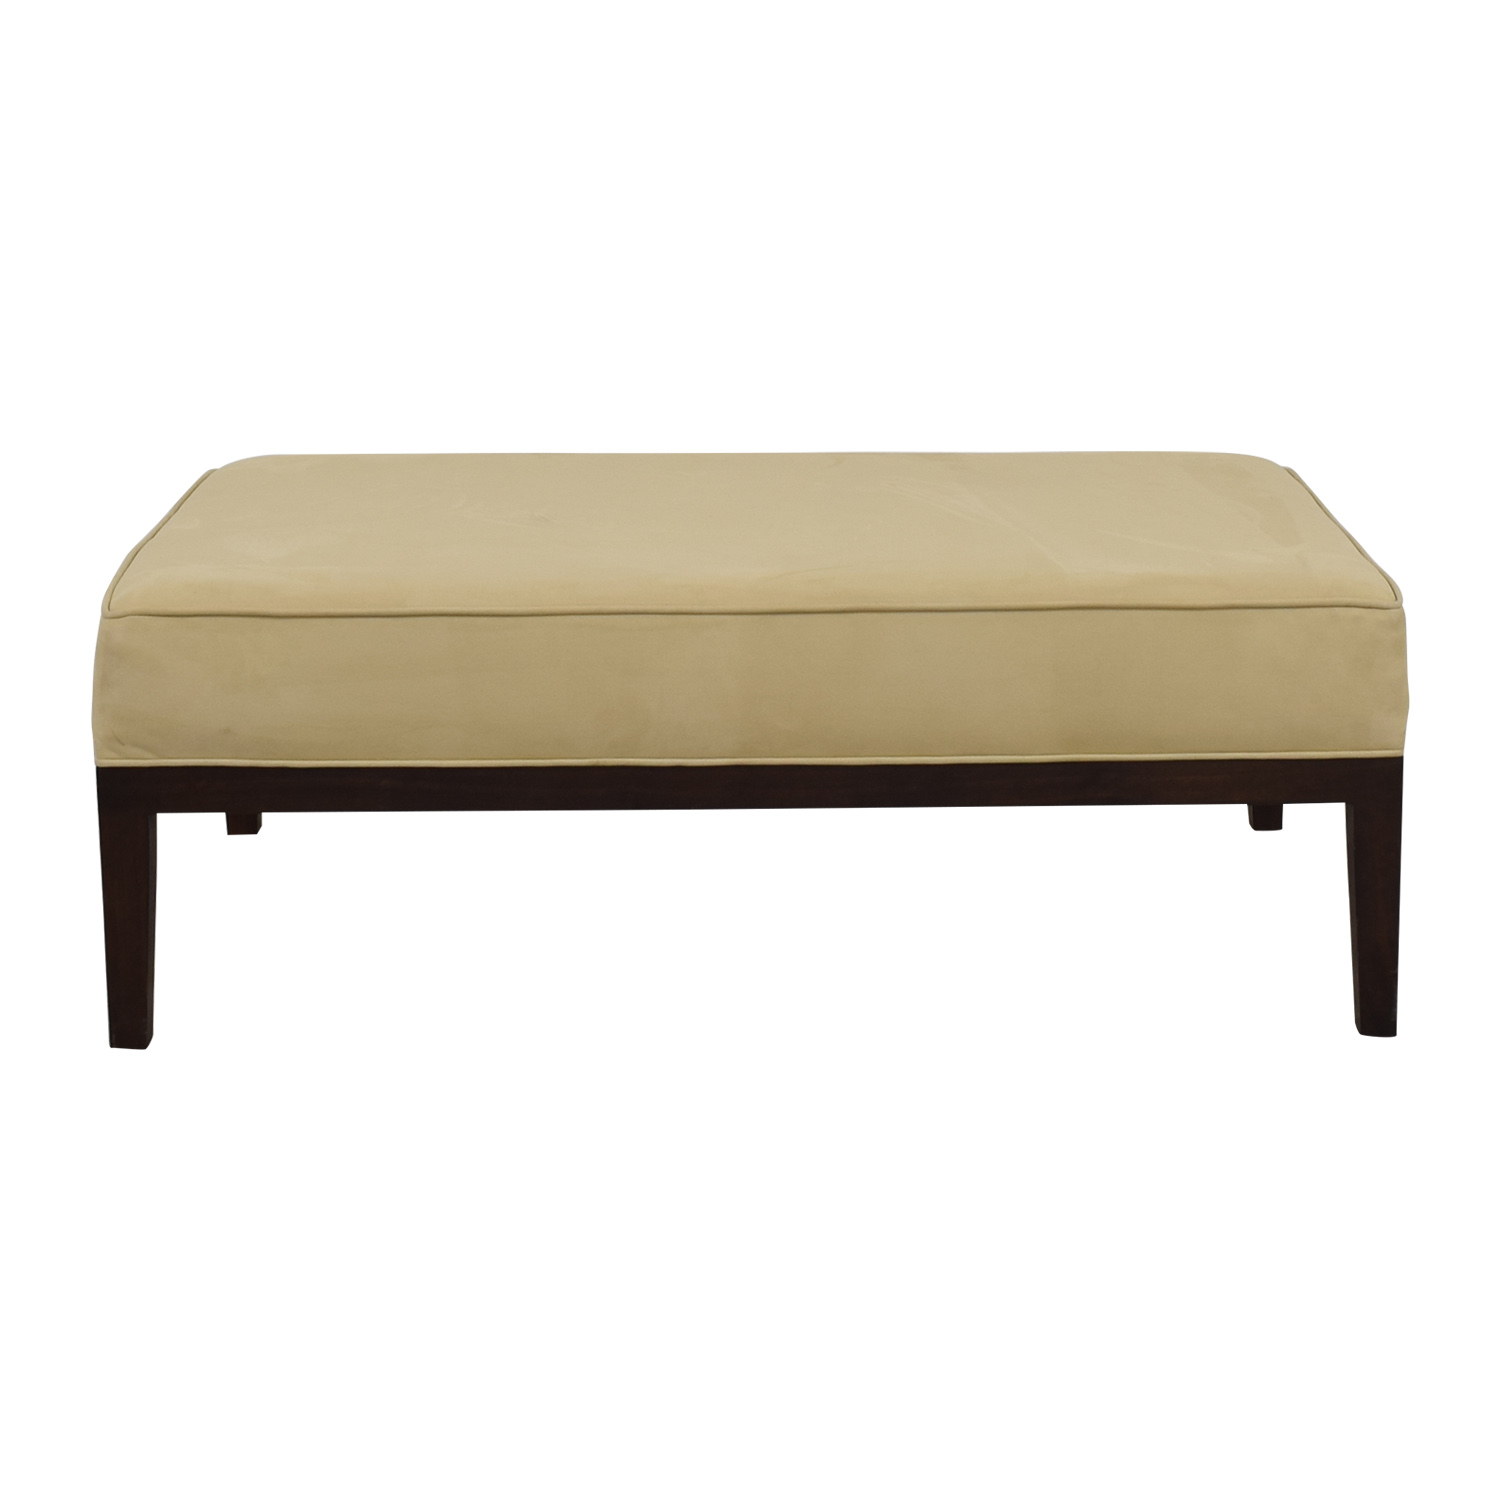 Tan Suede Bench Ottoman coupon